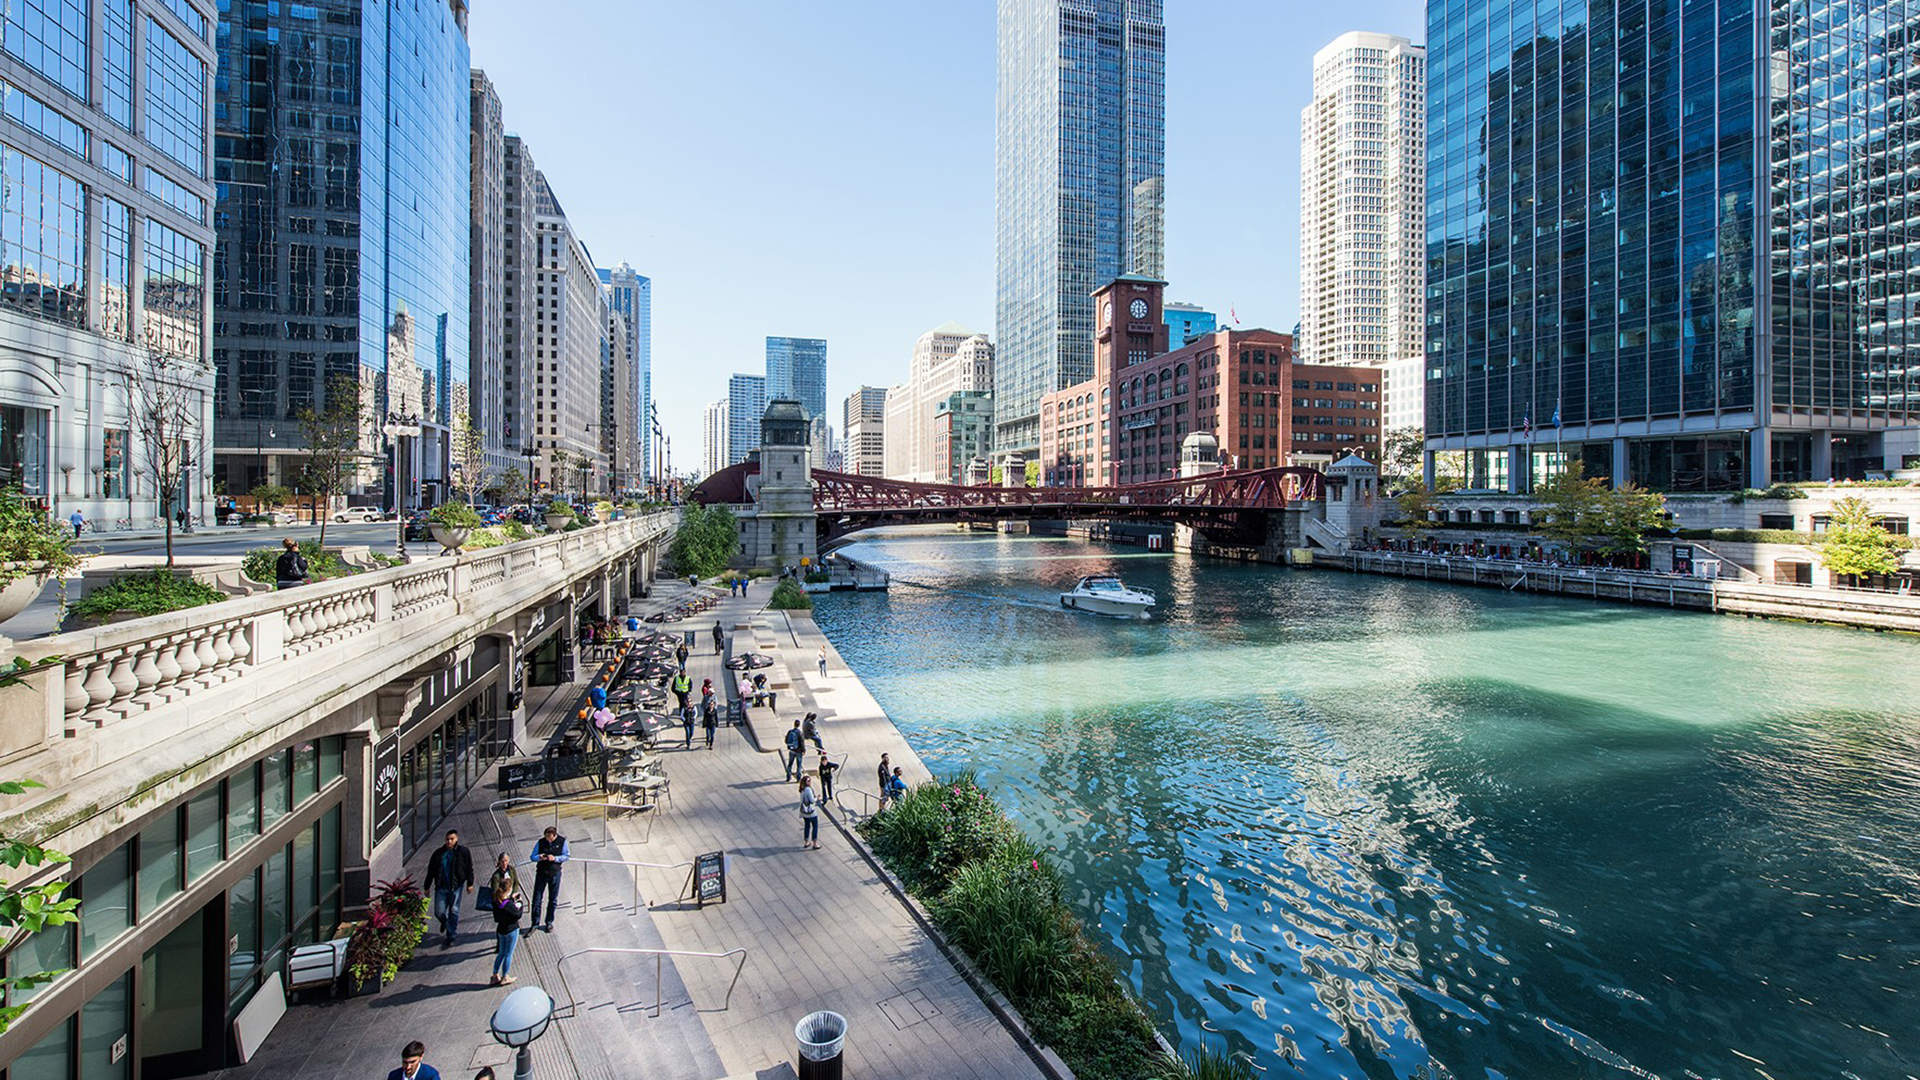 Chicago s Riverwalk. Photo by Angie McMonigal.